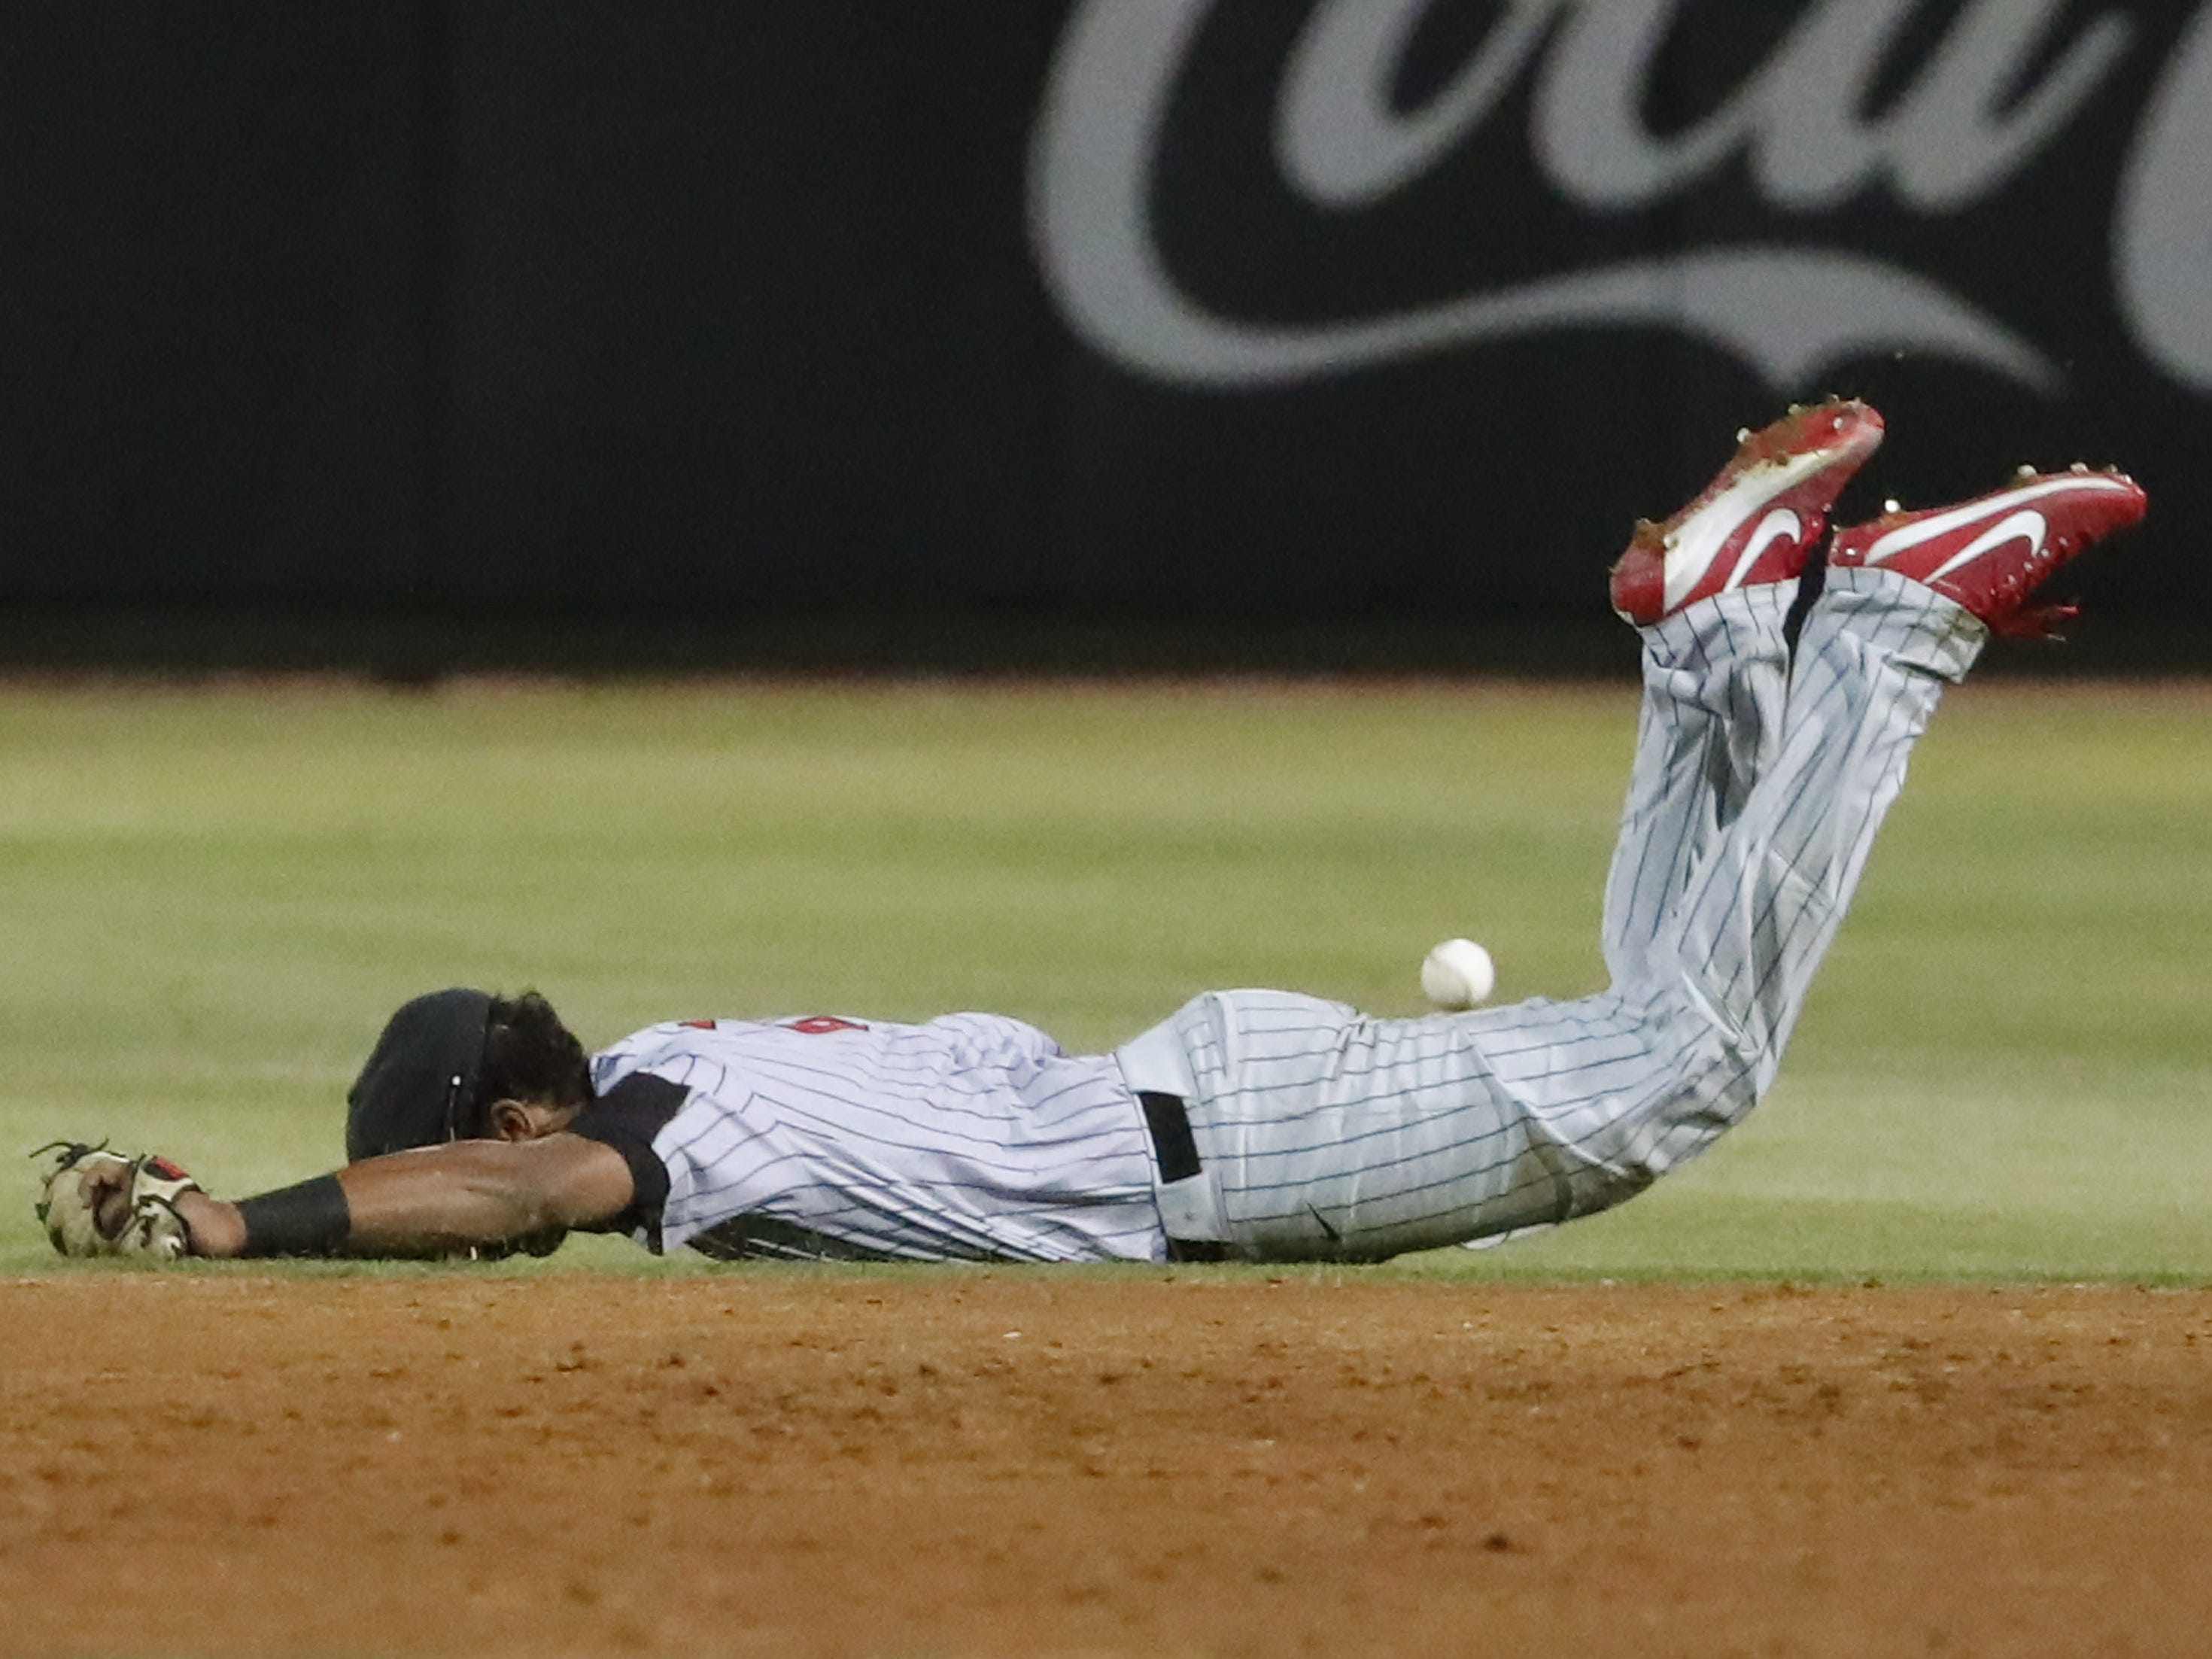 UNLV second baseman Adrian Williams dives for a base hit by ASU's Gage Workman during the third inning in Phoenix April 23, 2019.